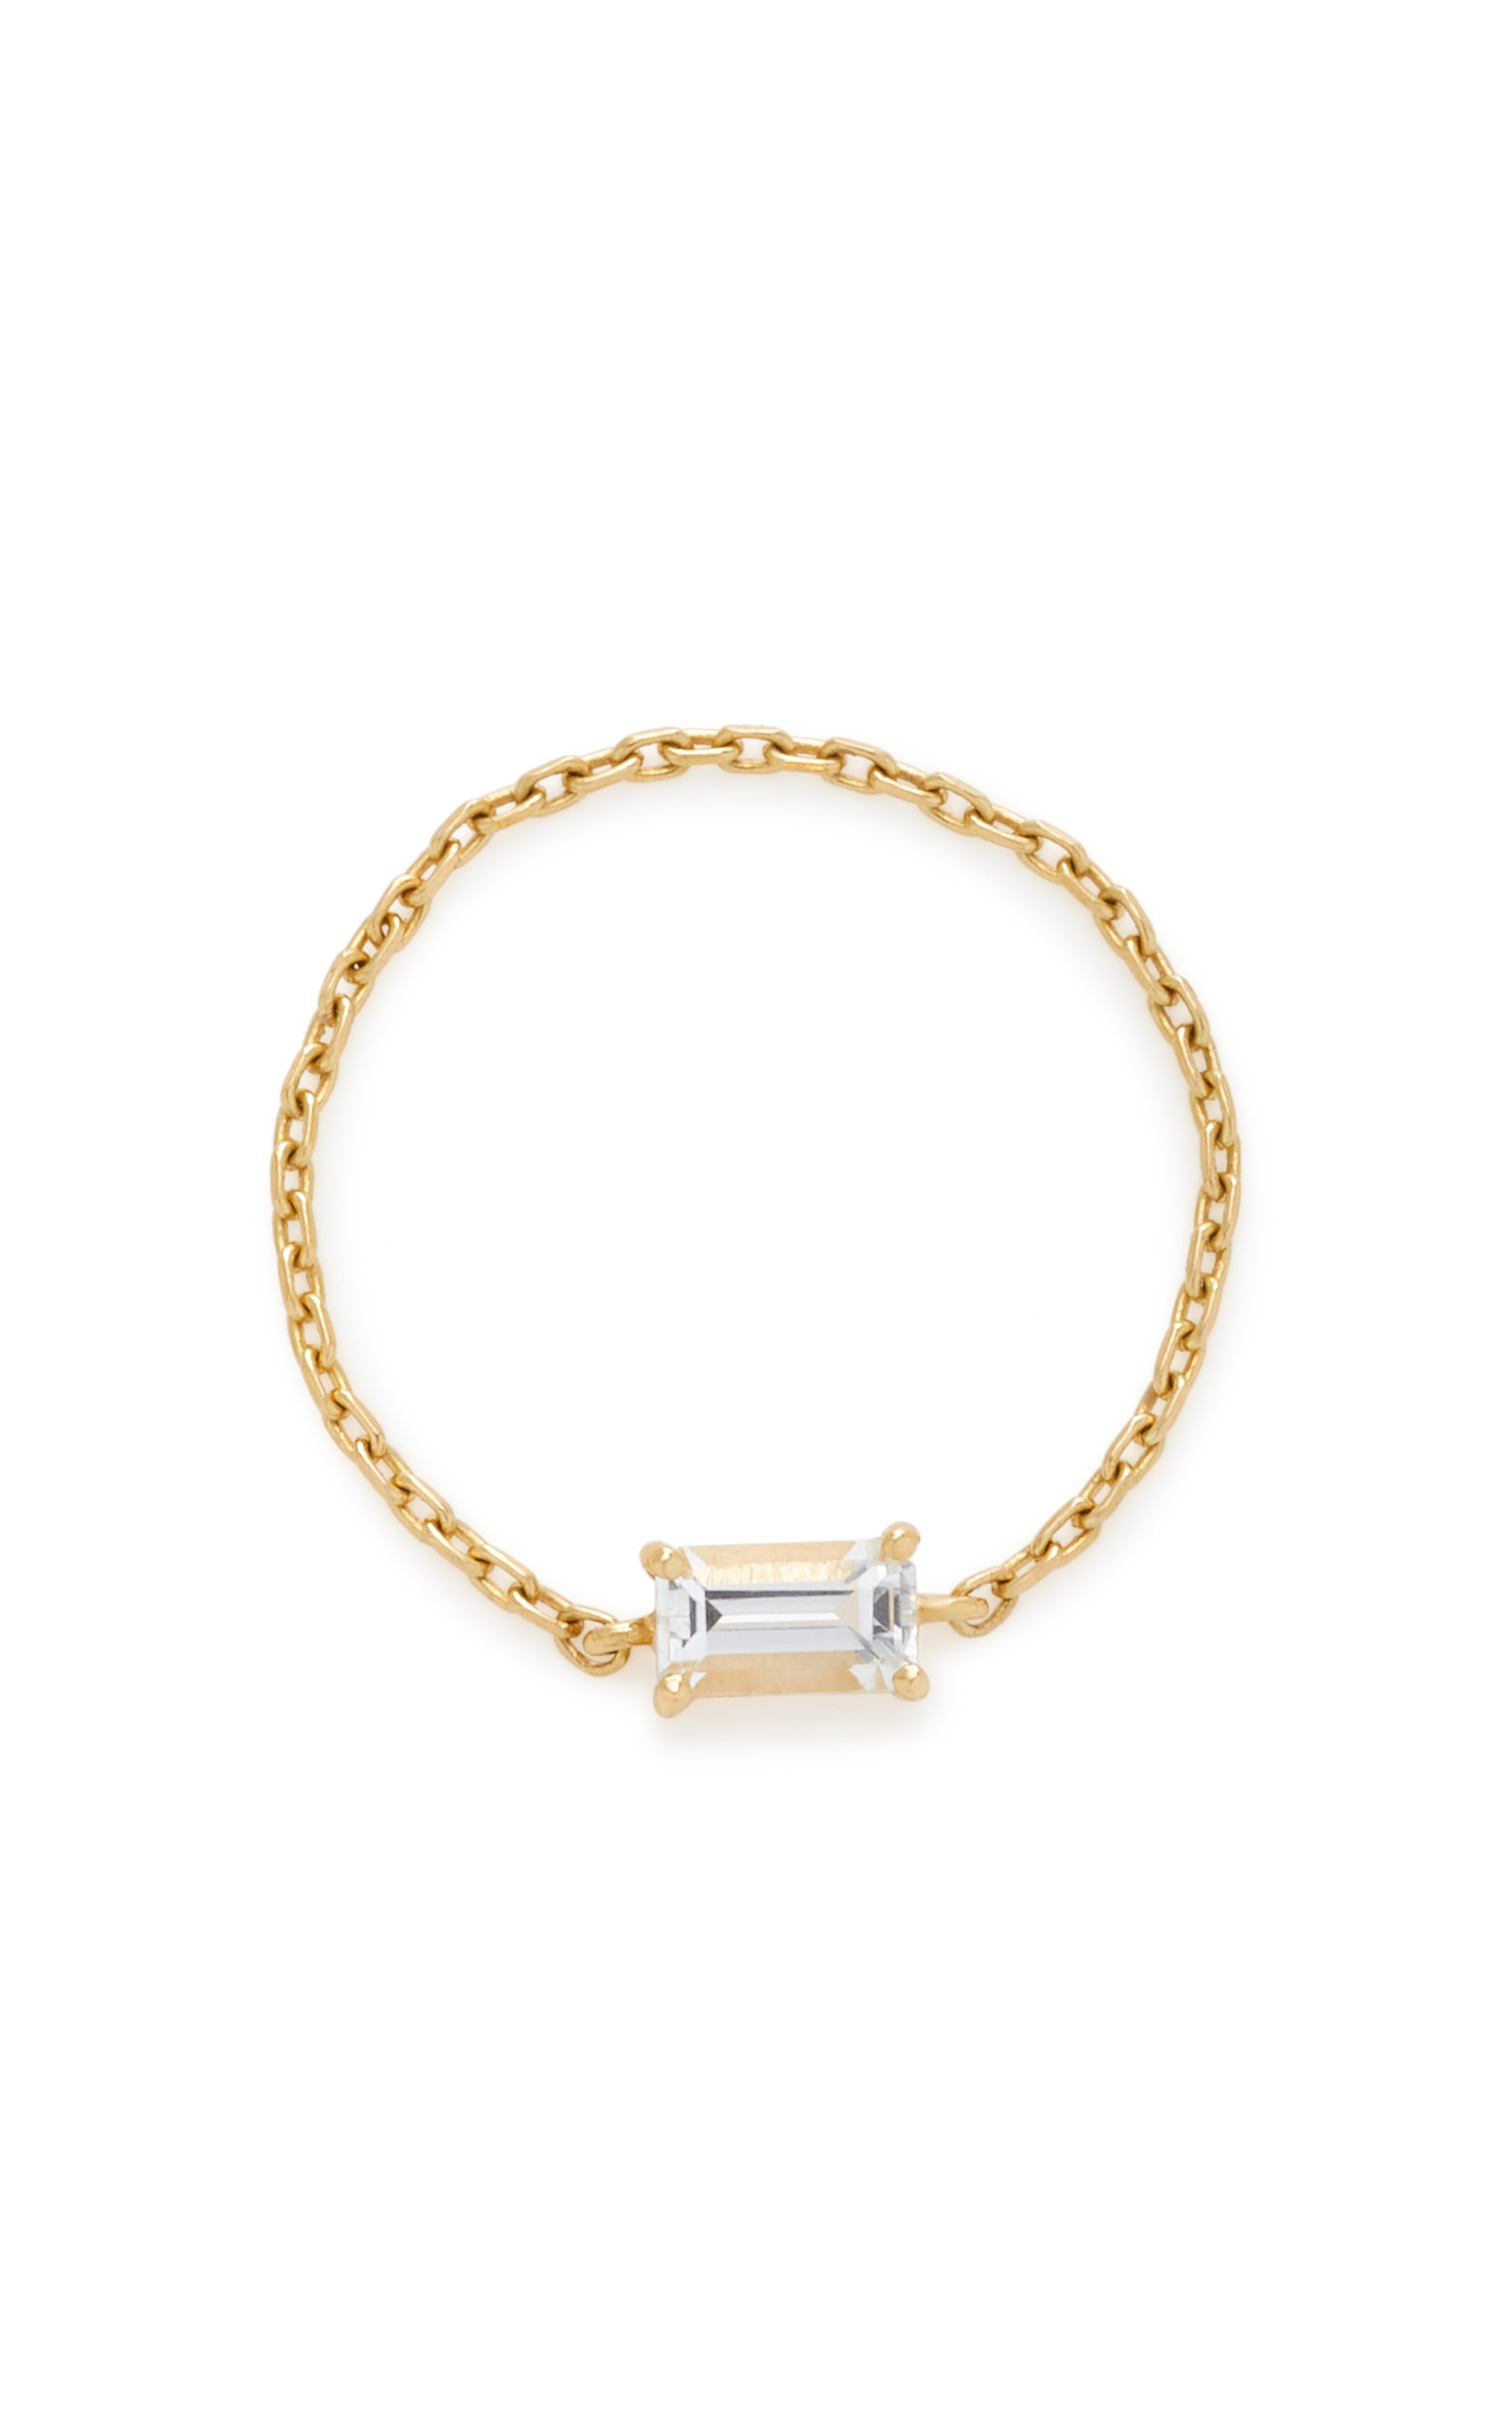 YI COLLECTION 18K GOLD WHITE TOPAZ CHAIN RING